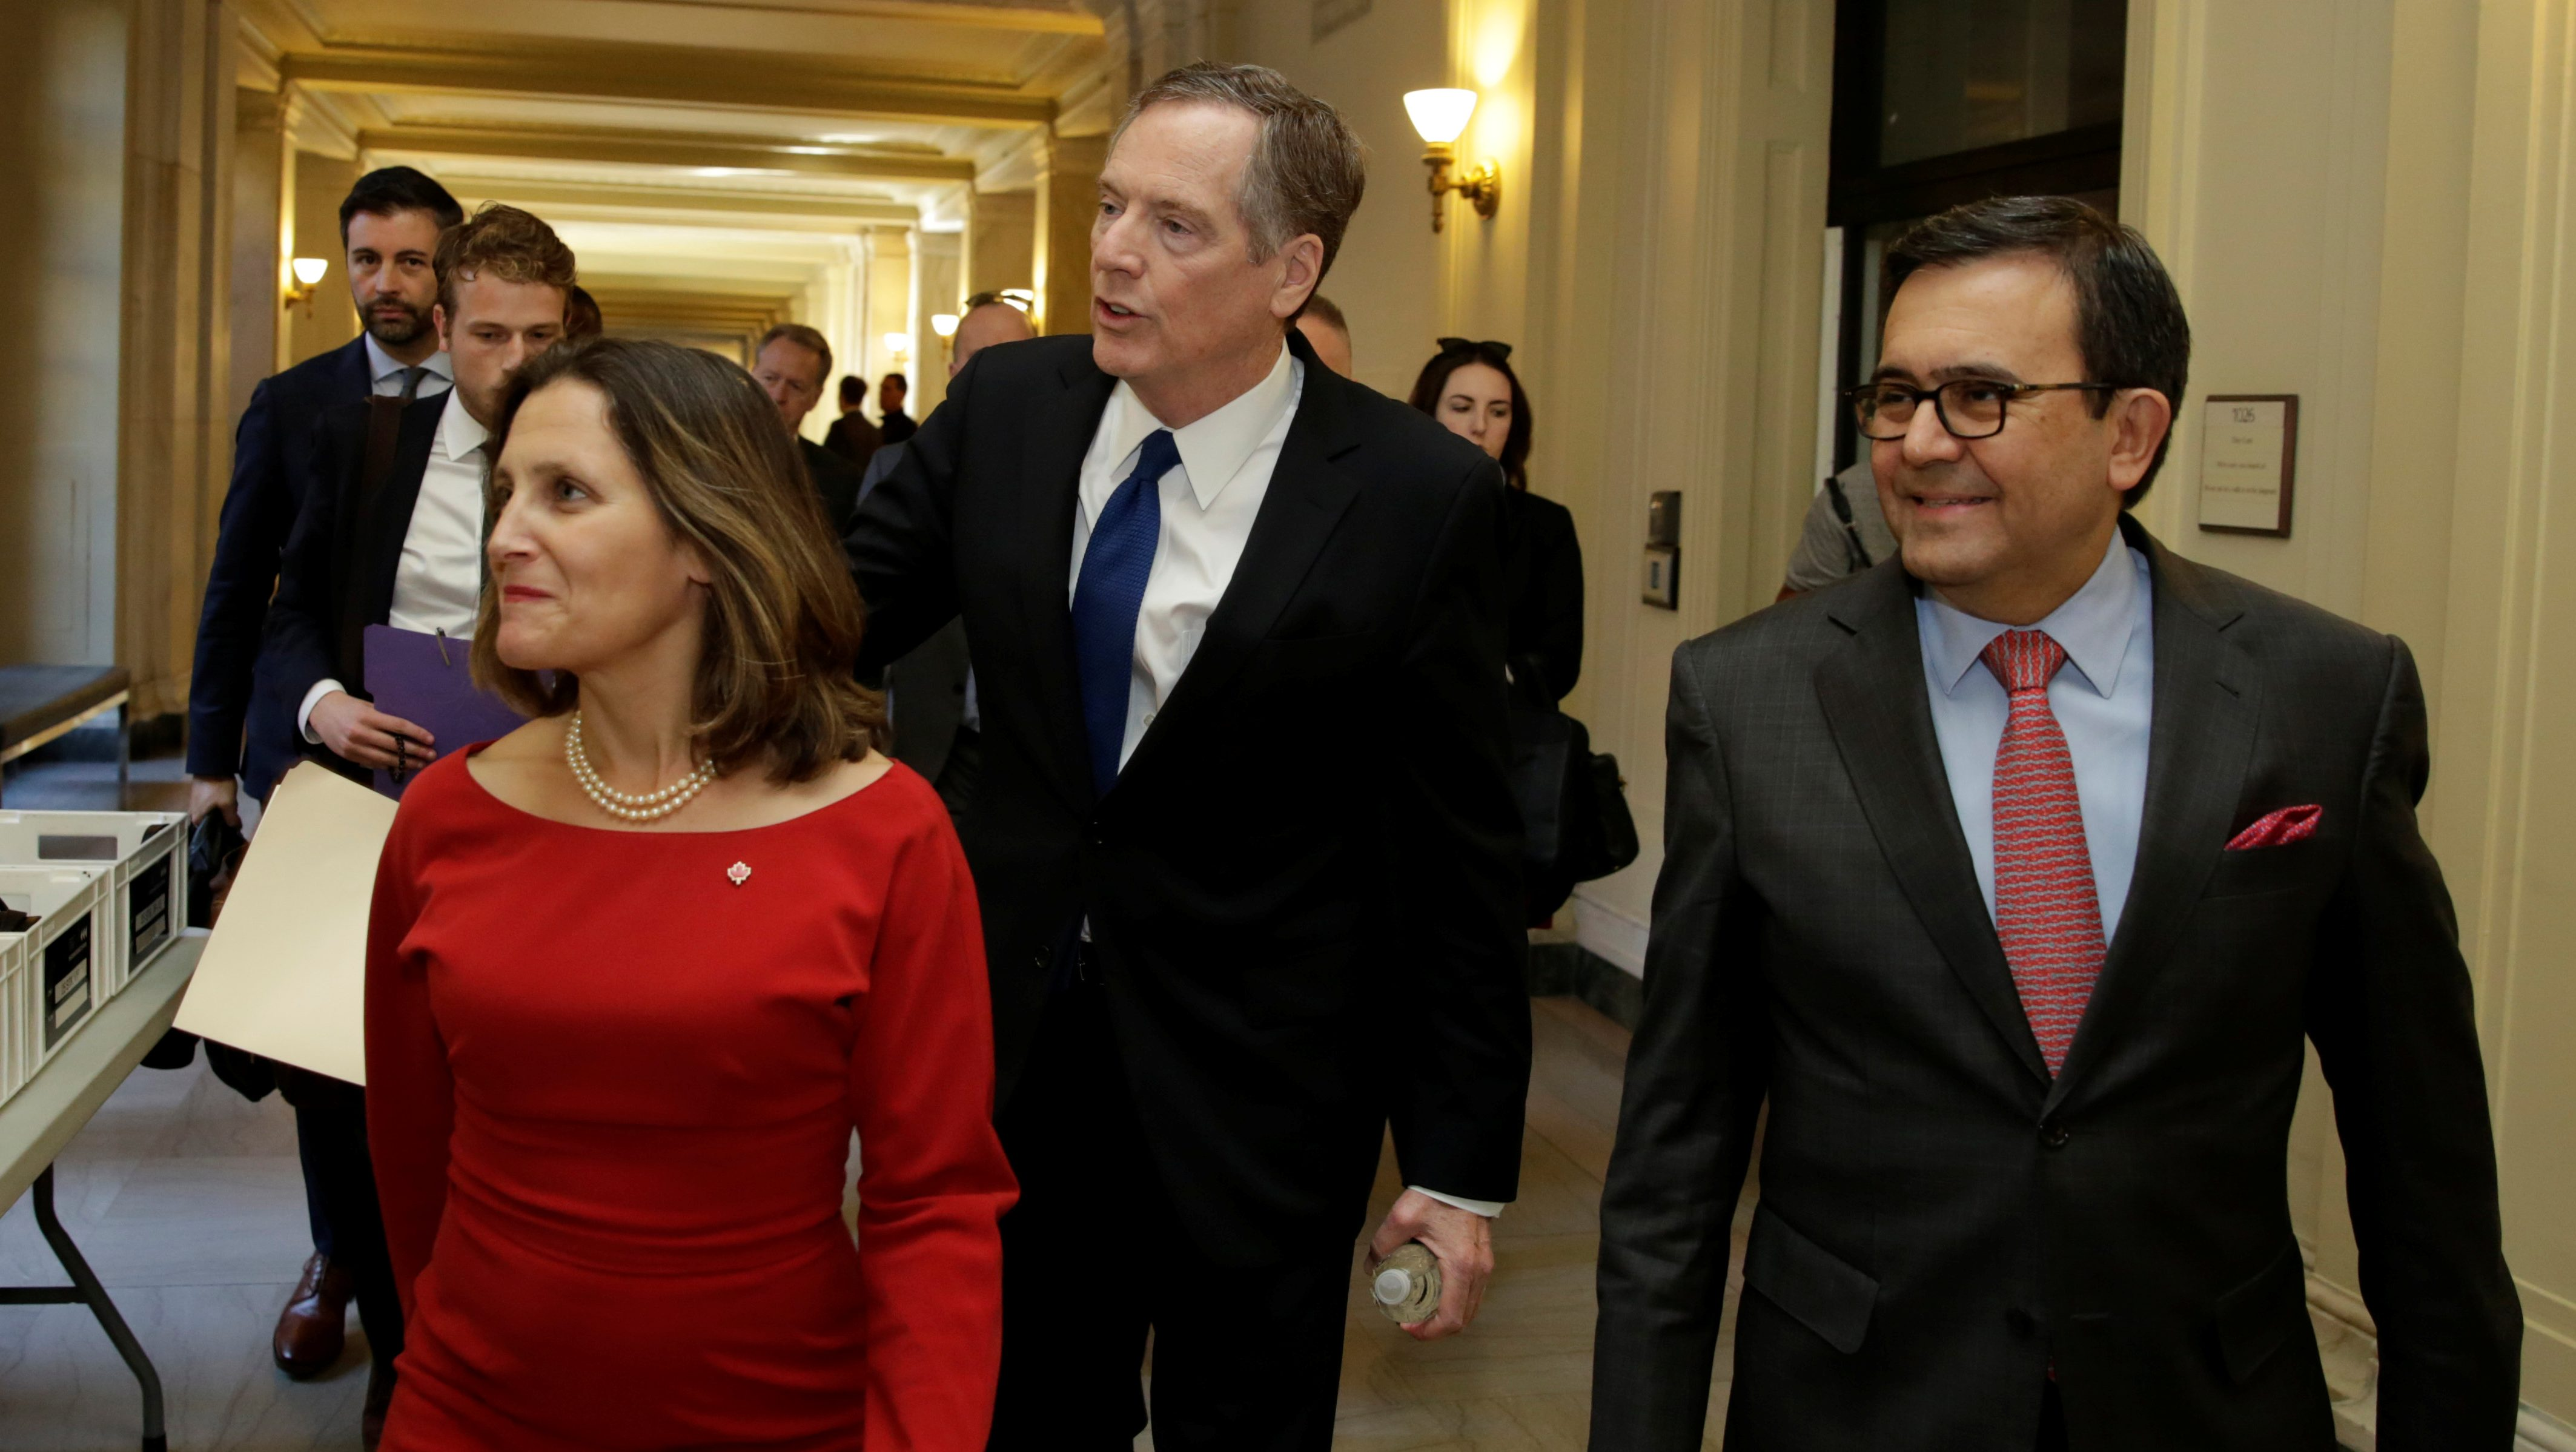 Canadian Foreign Affairs Minister Chrystia Freeland, U.S. Trade Rep Robert Lighthizer and Mexican Secretary of Economy Ildefonso Guajardo Villarreal nafta talks